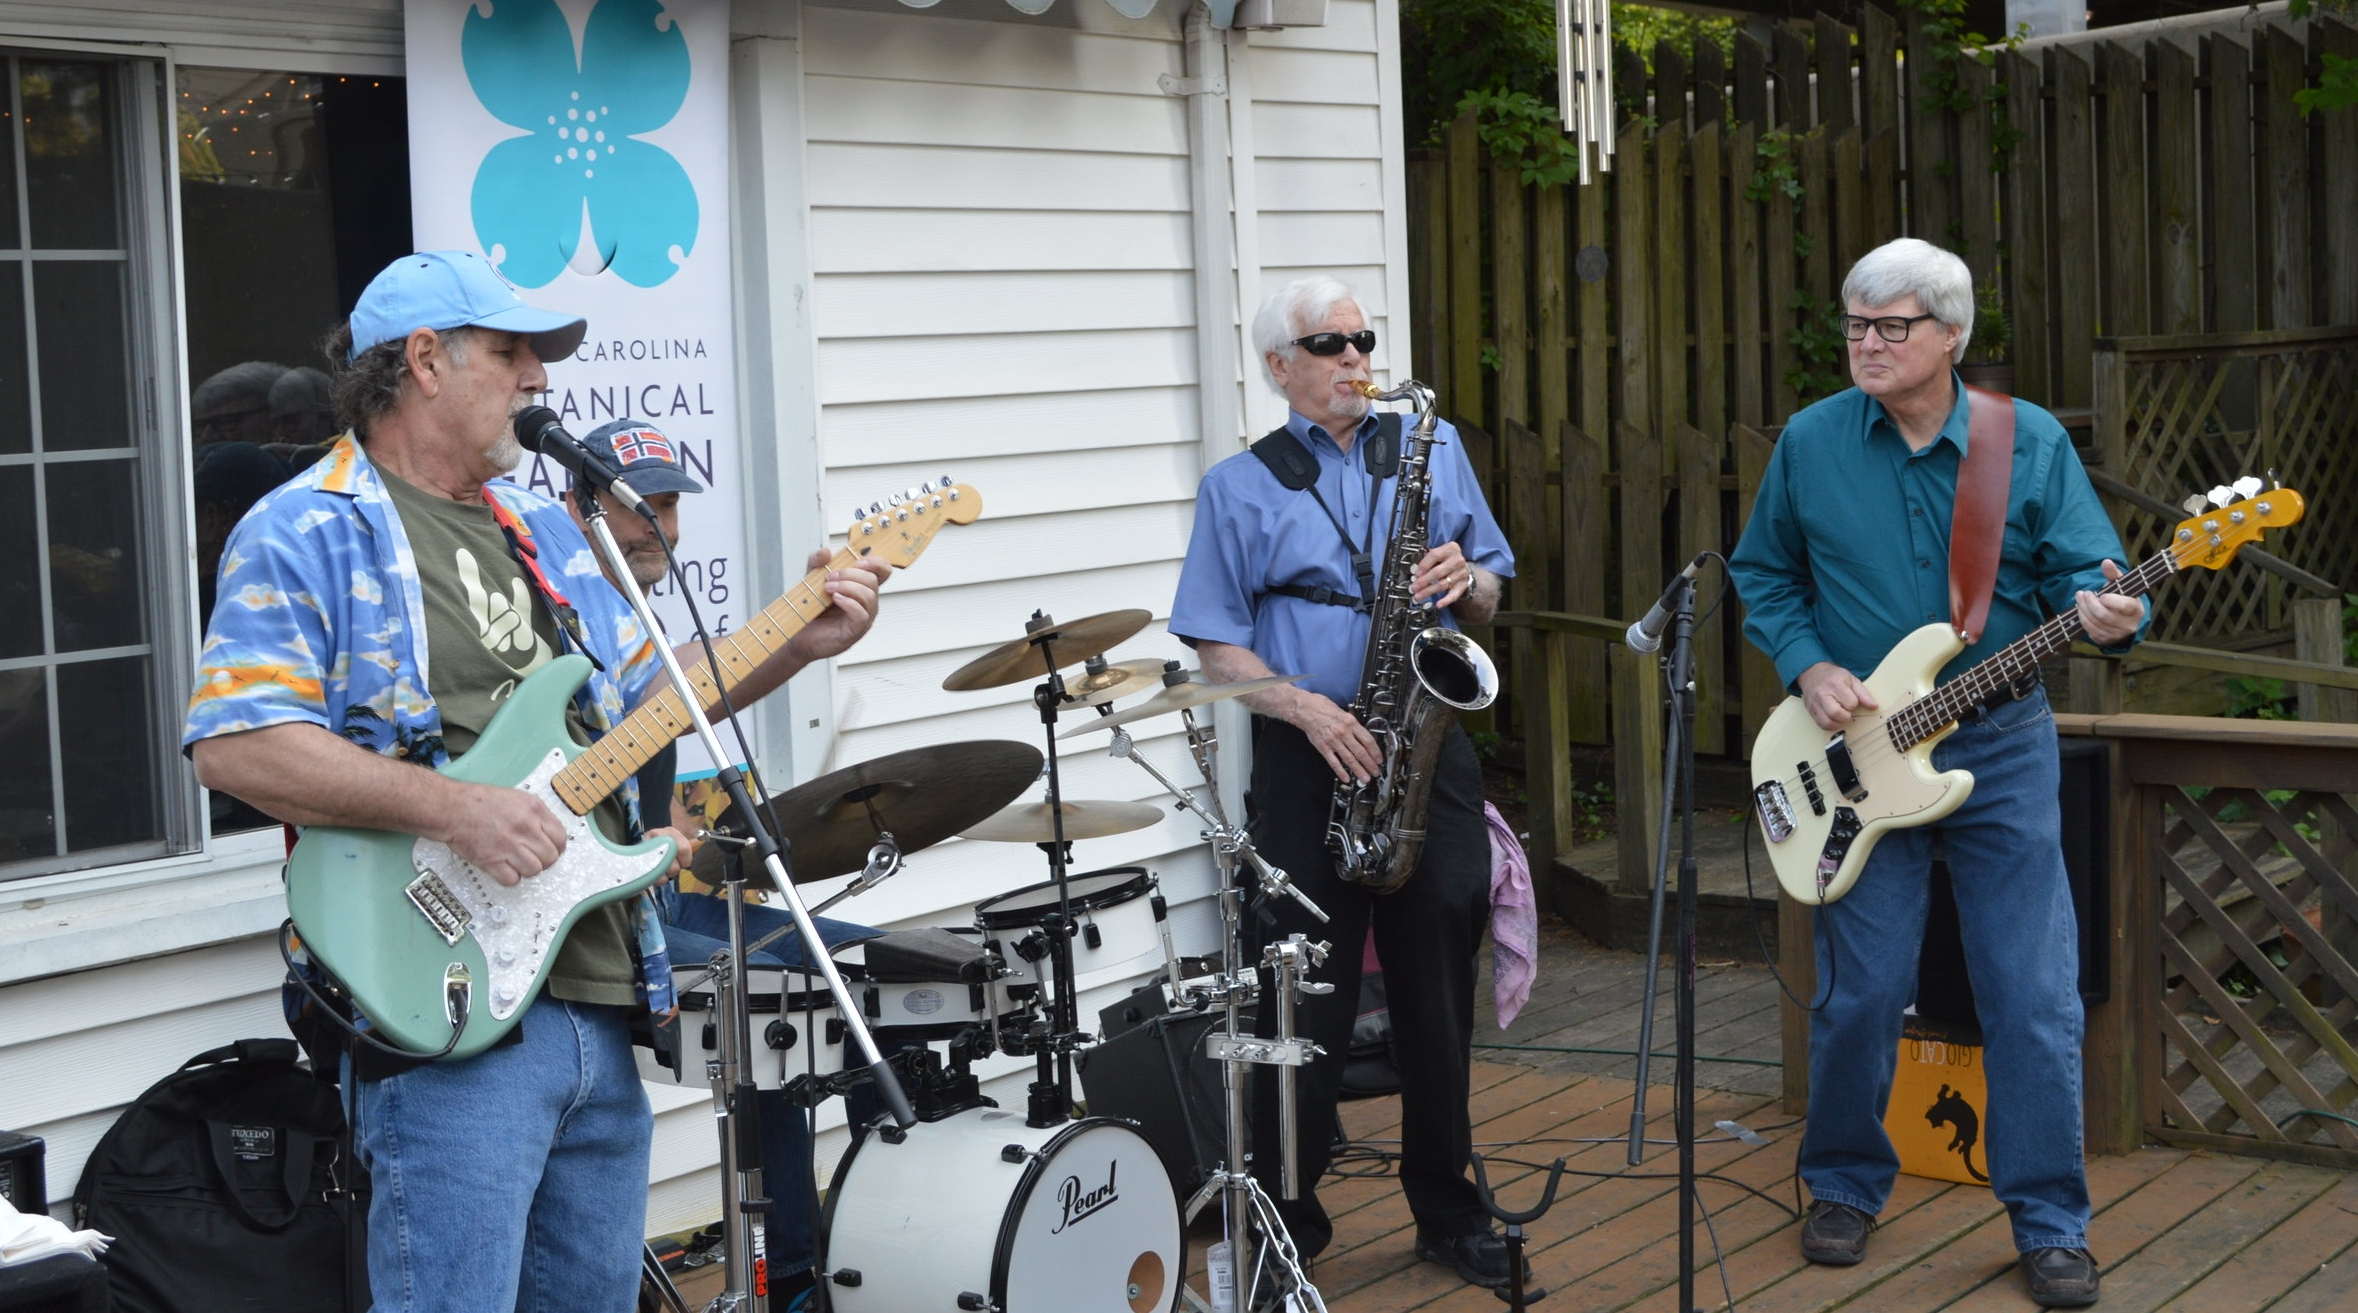 Lee Gildersleeve & the Bad Dogs  - Come enjoy National Whiskey Sour Day with Blues & Big Sam's delicious BBQ (chicken & pork)! Whiskey specials all day! Food @5pm & music starting @ 7pm.